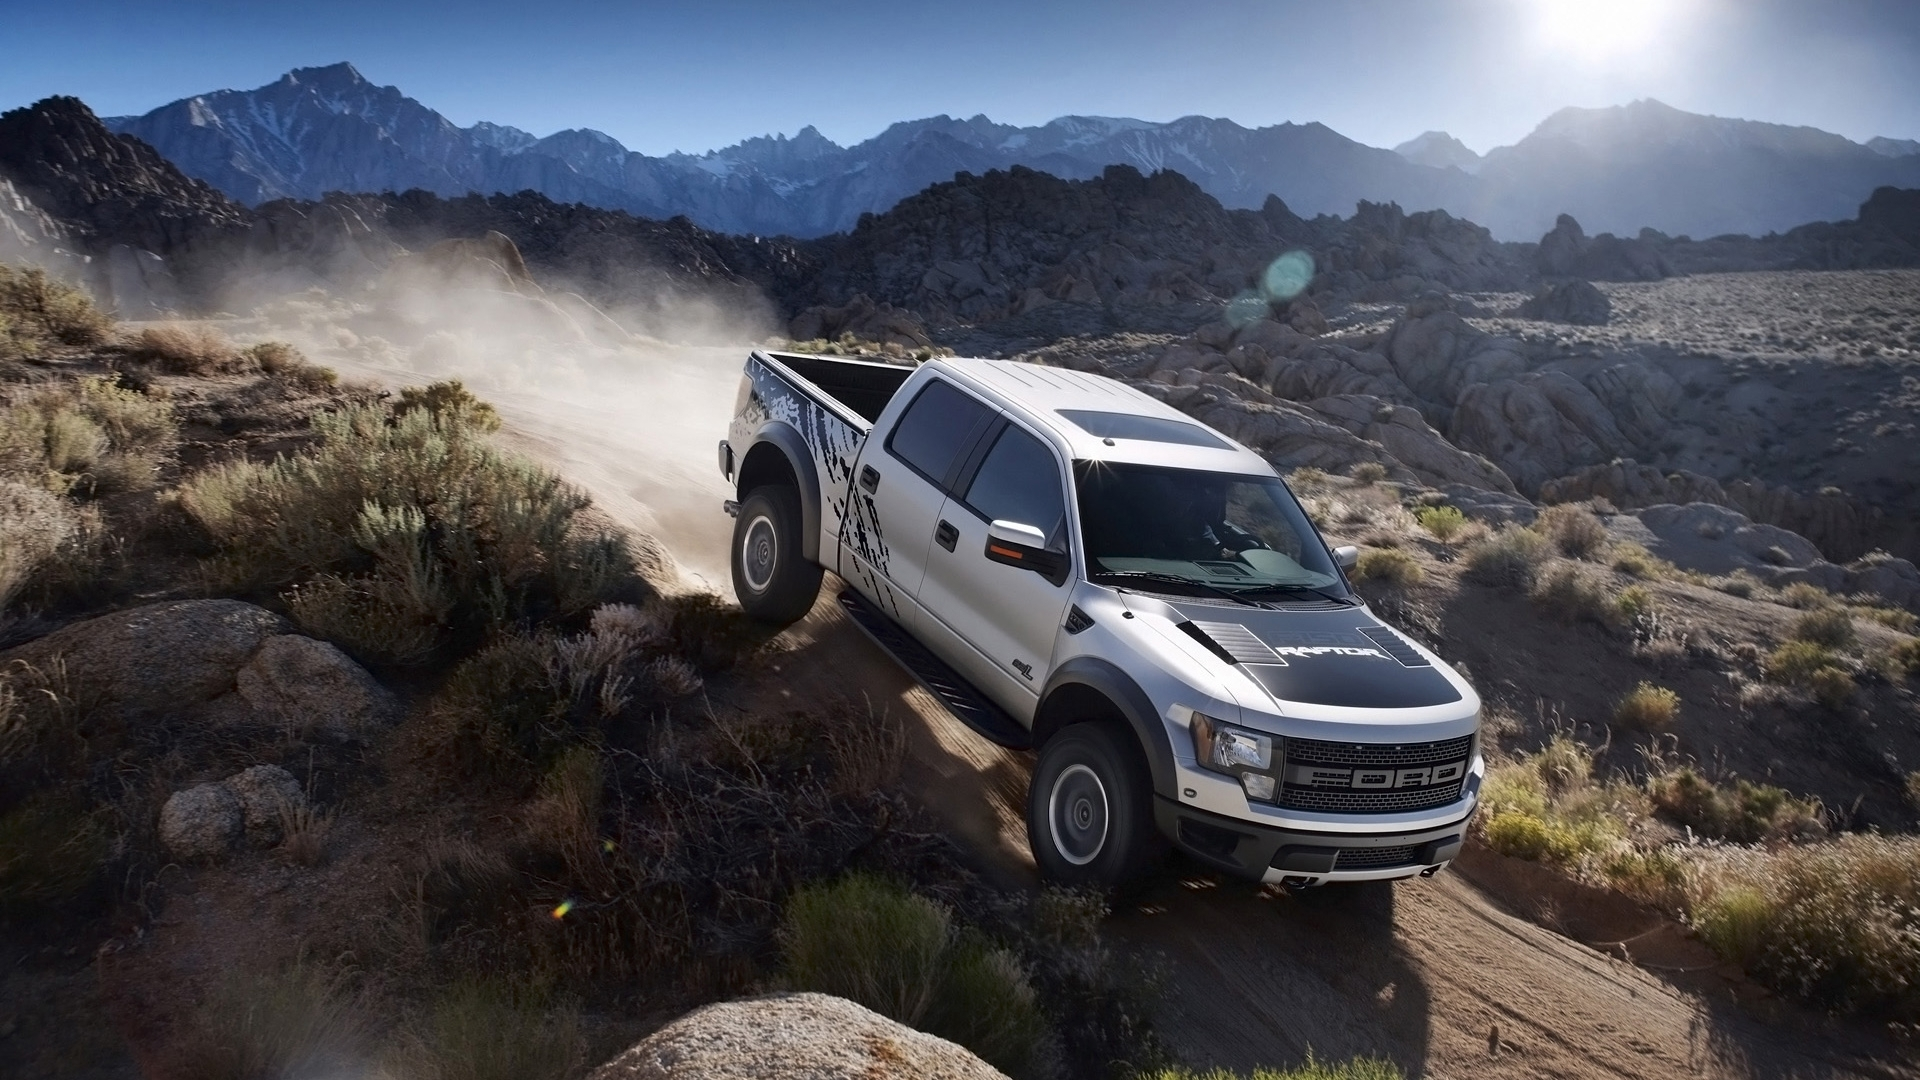 Ford Raptor Truck HD Wallpaper   HD 1920x1080